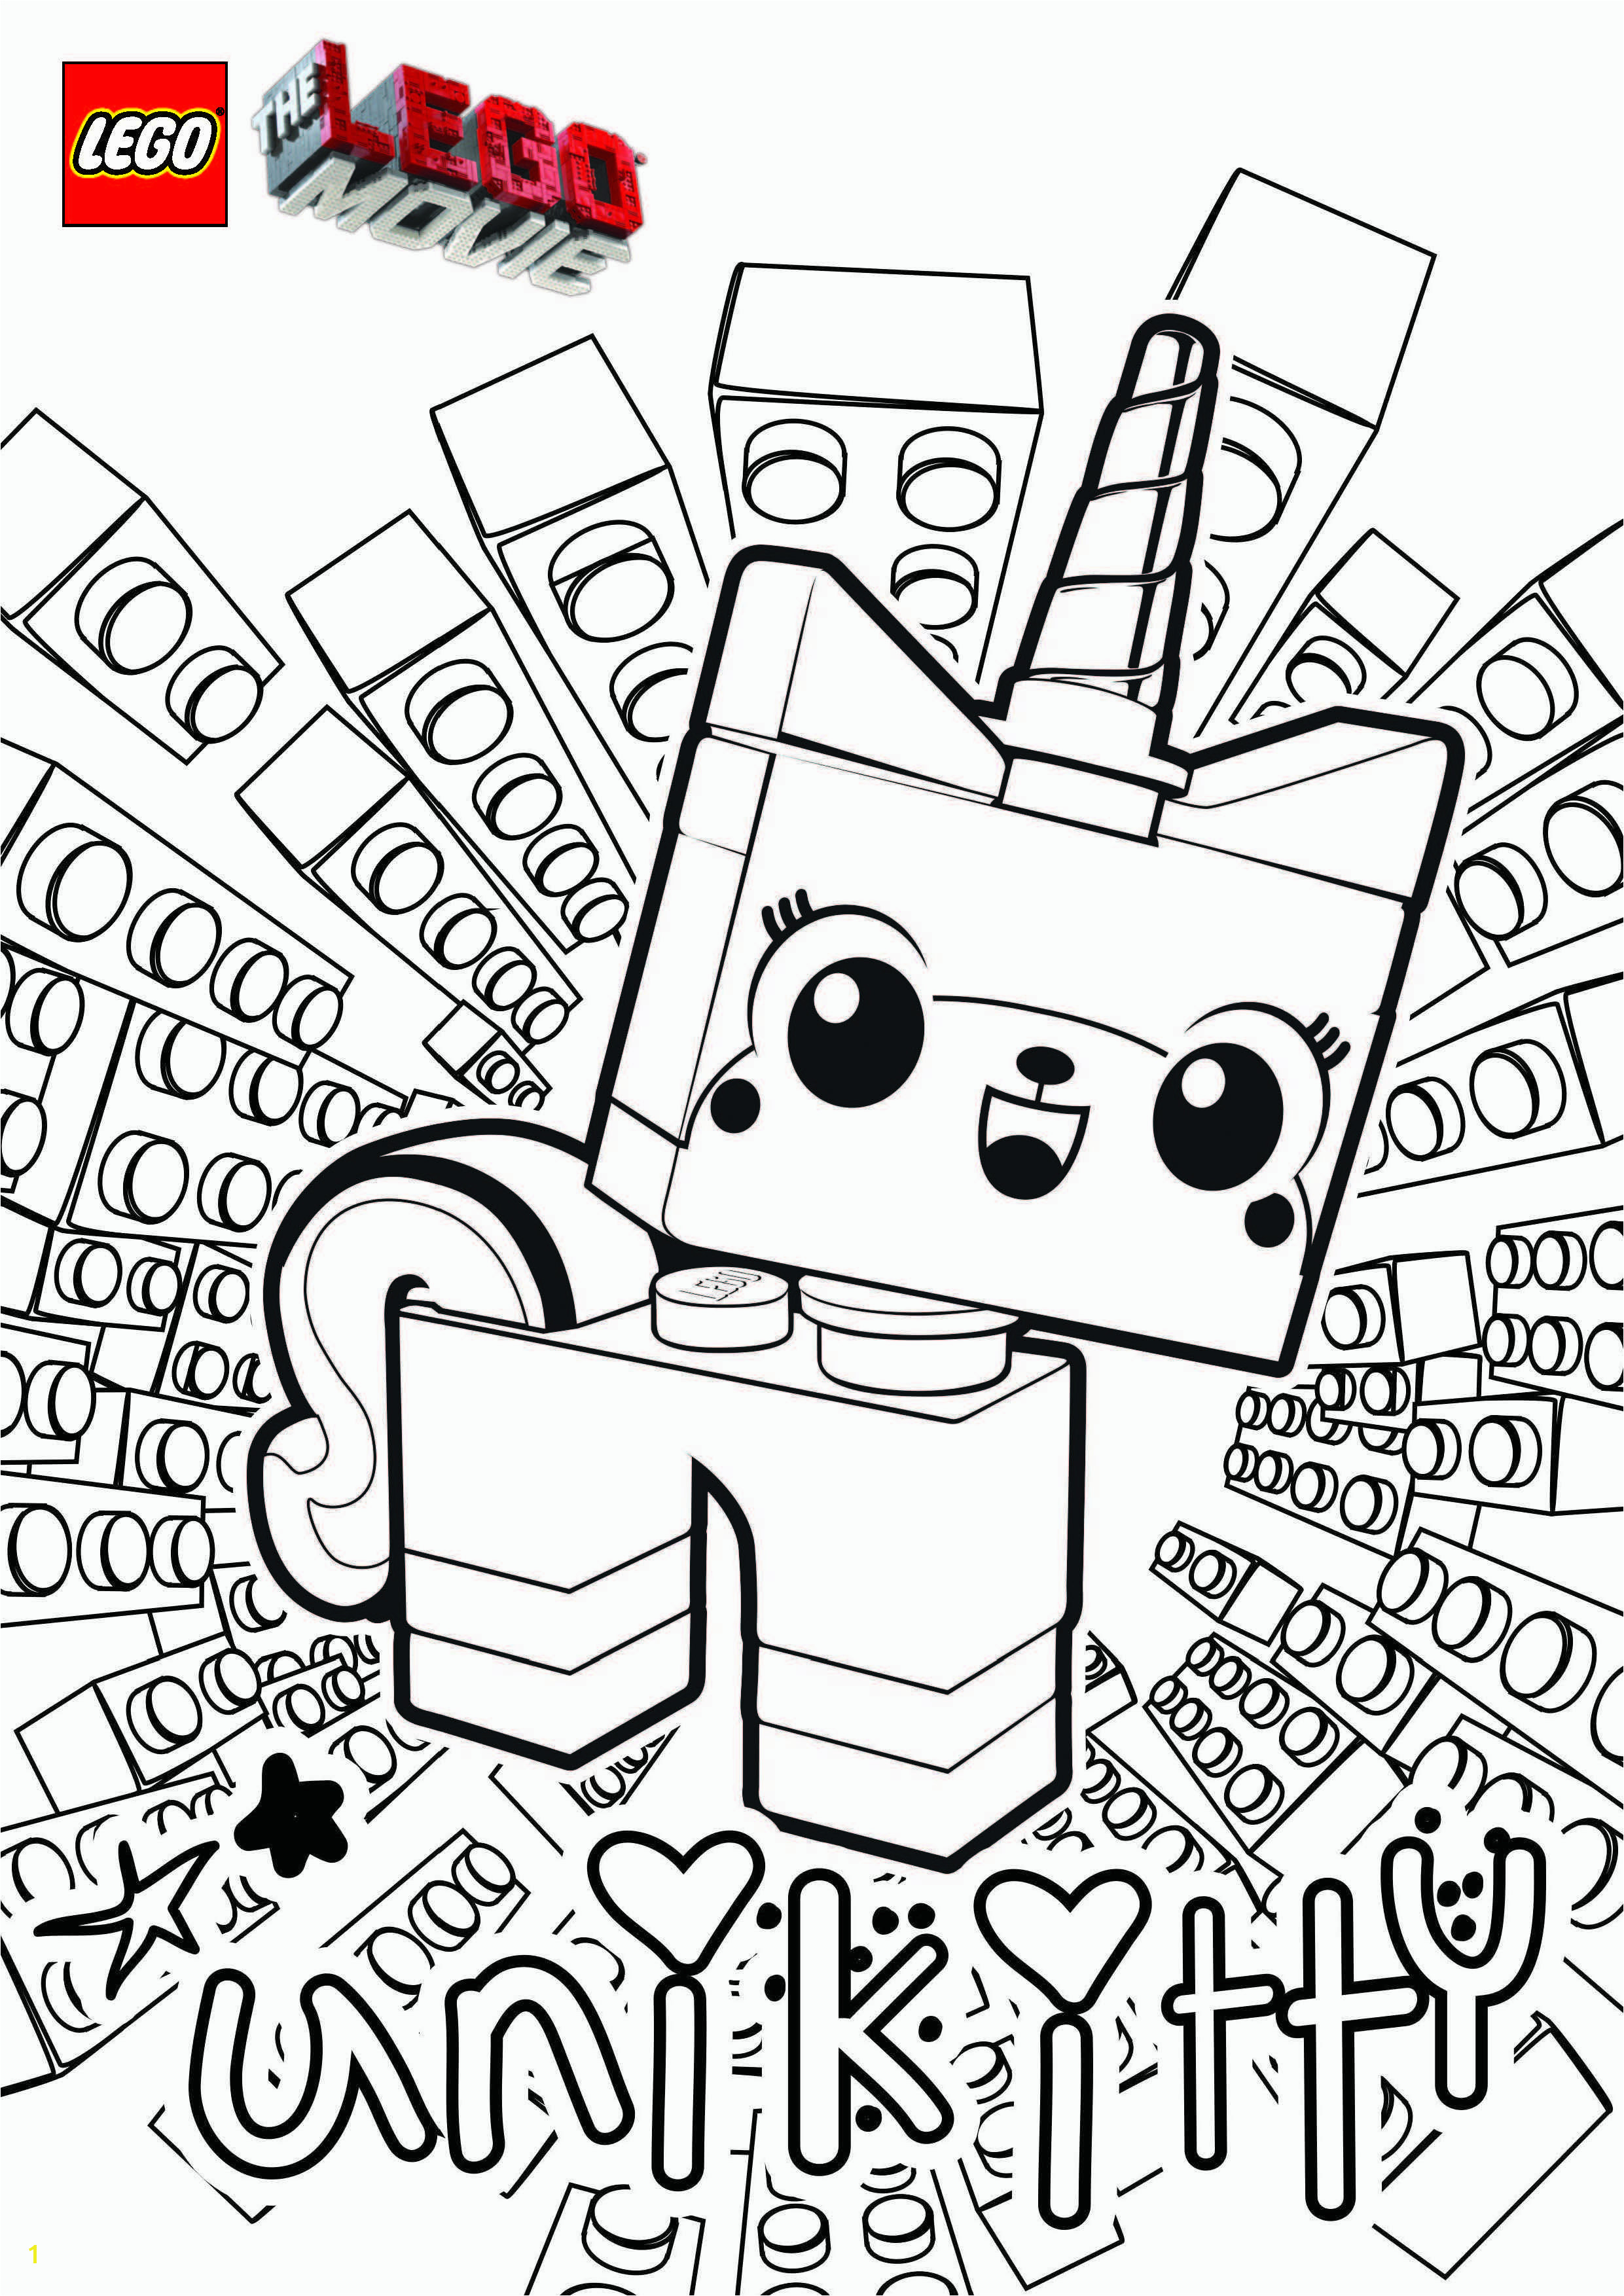 Epic Movie Coloring Pages Lego Movie Party Ideas Goody Bags or Party Activity Lego